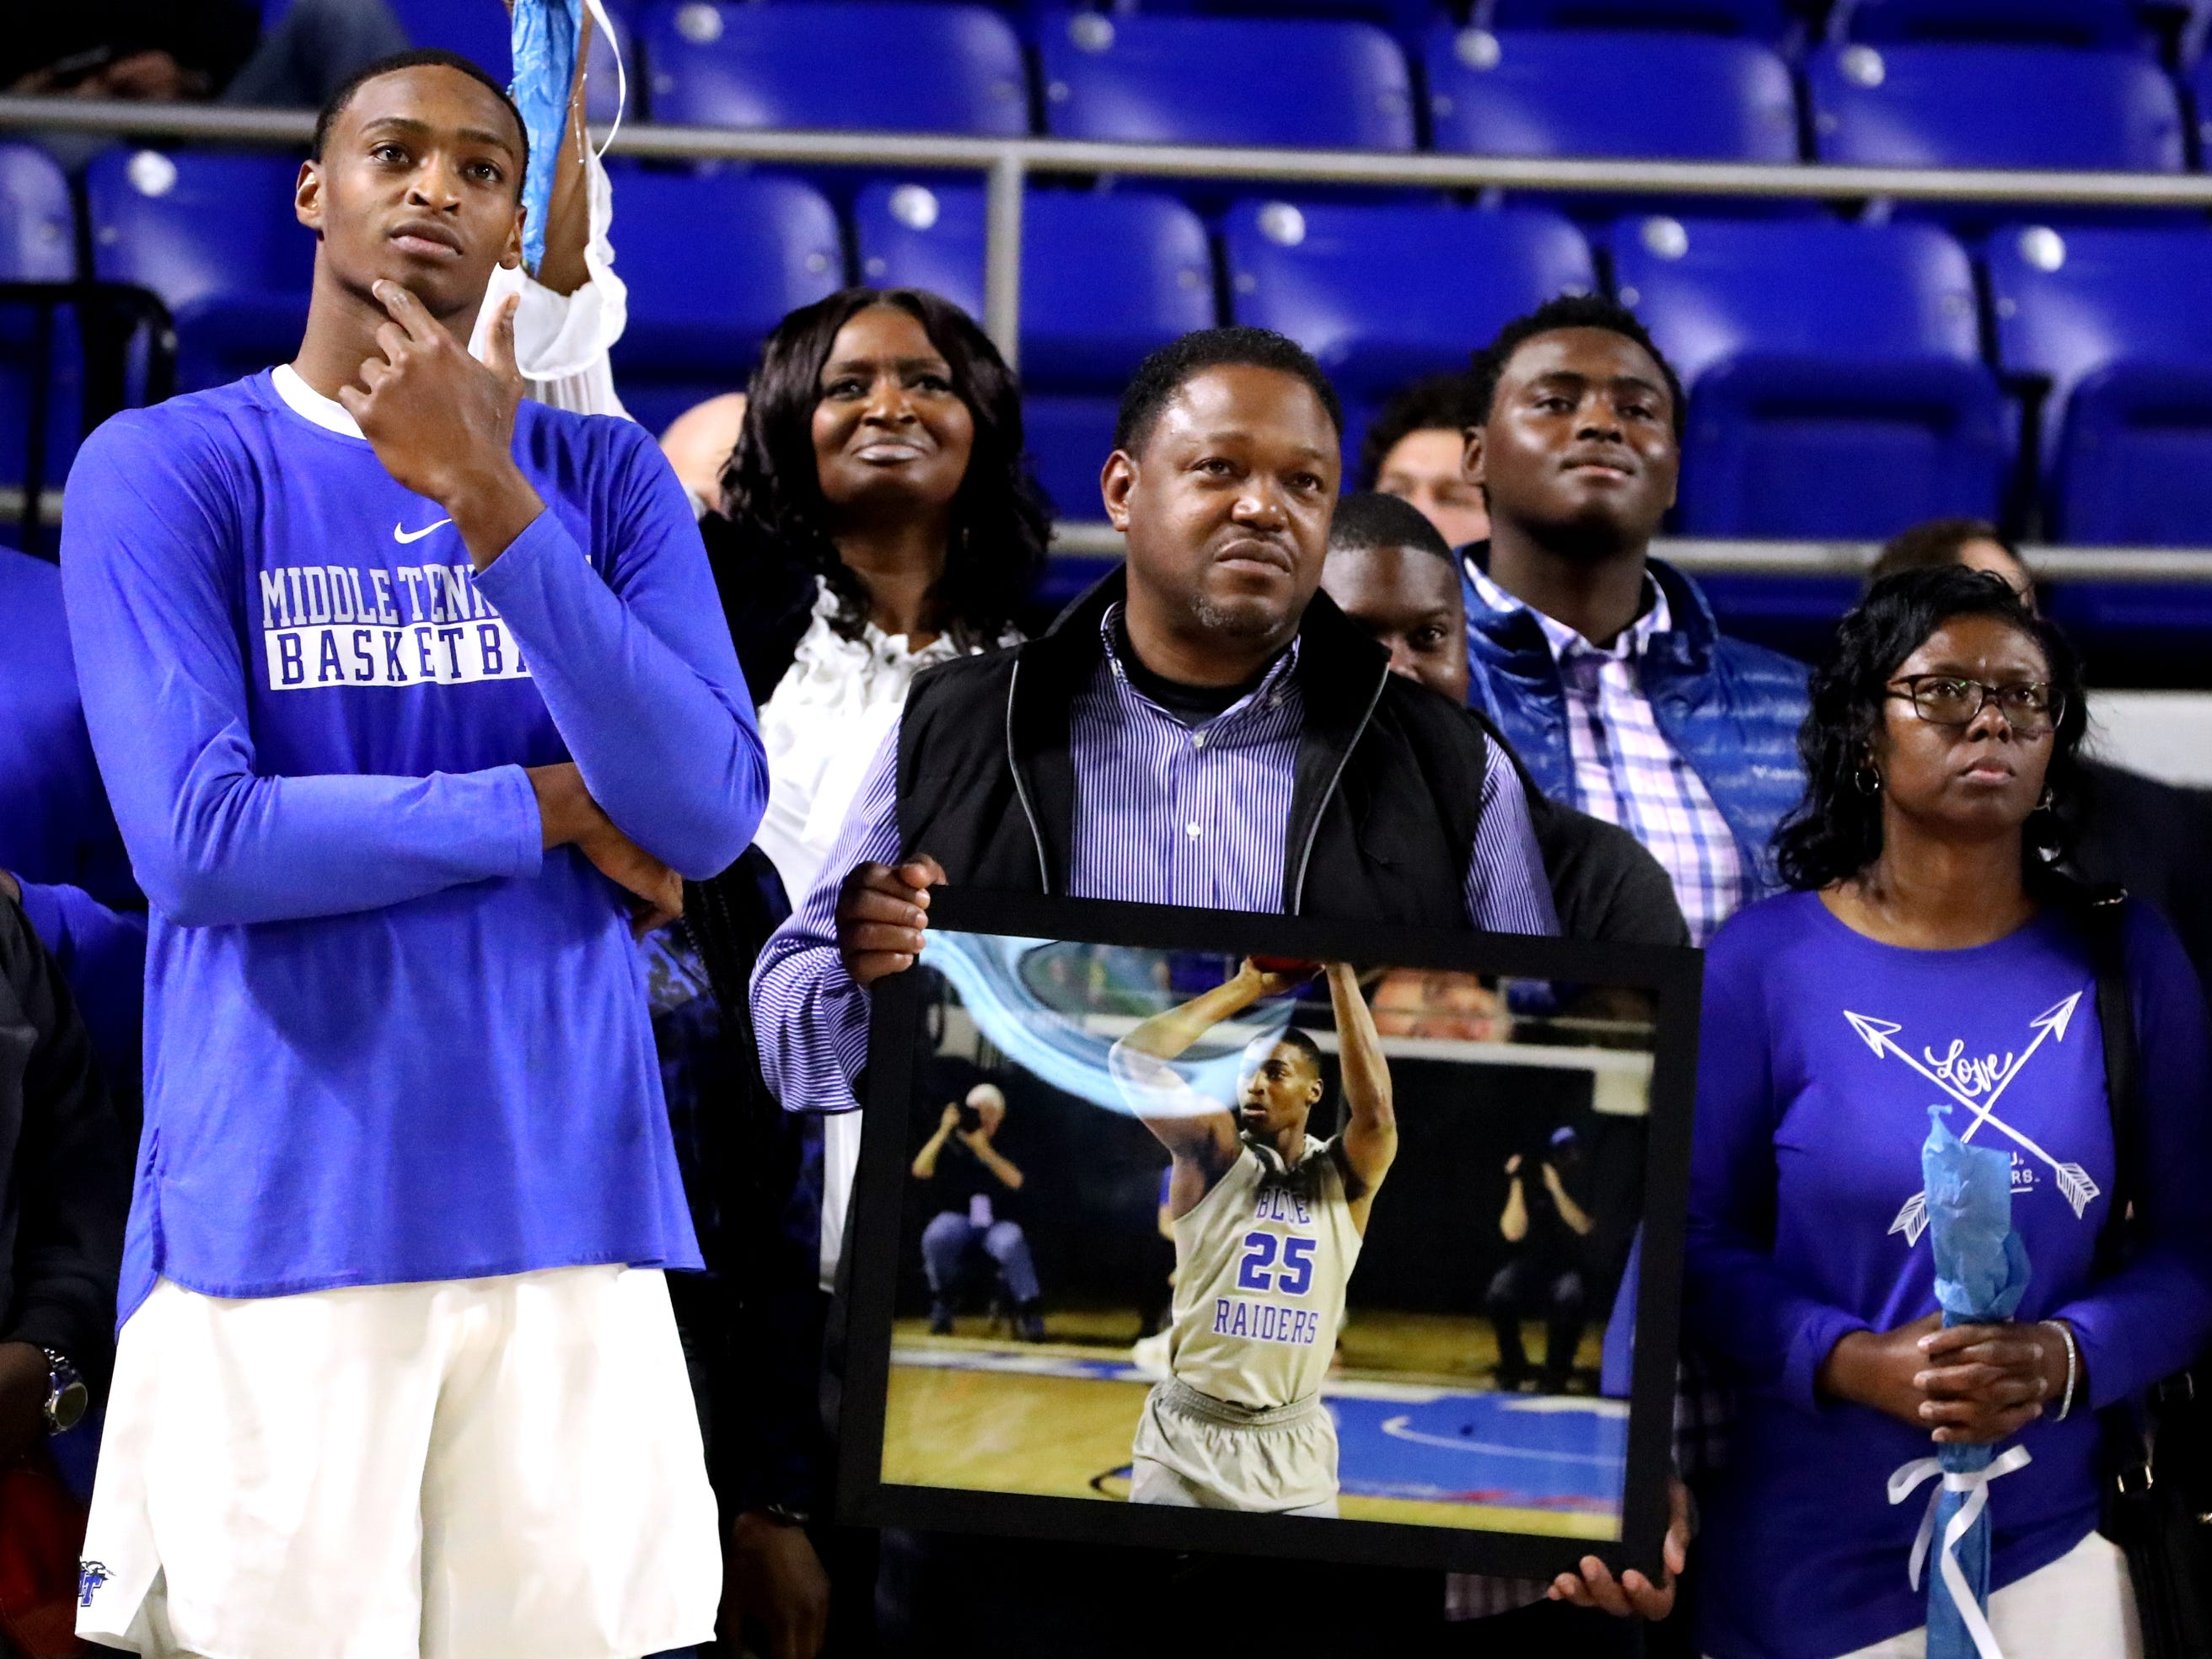 MTSU senior forward Karl Gamble (25) stands with his family as he was was honored during MTSU's senior night before the game against UTEP on Saturday, March 9, 2019, at Murphy Center in Murfreesboro, Tenn.